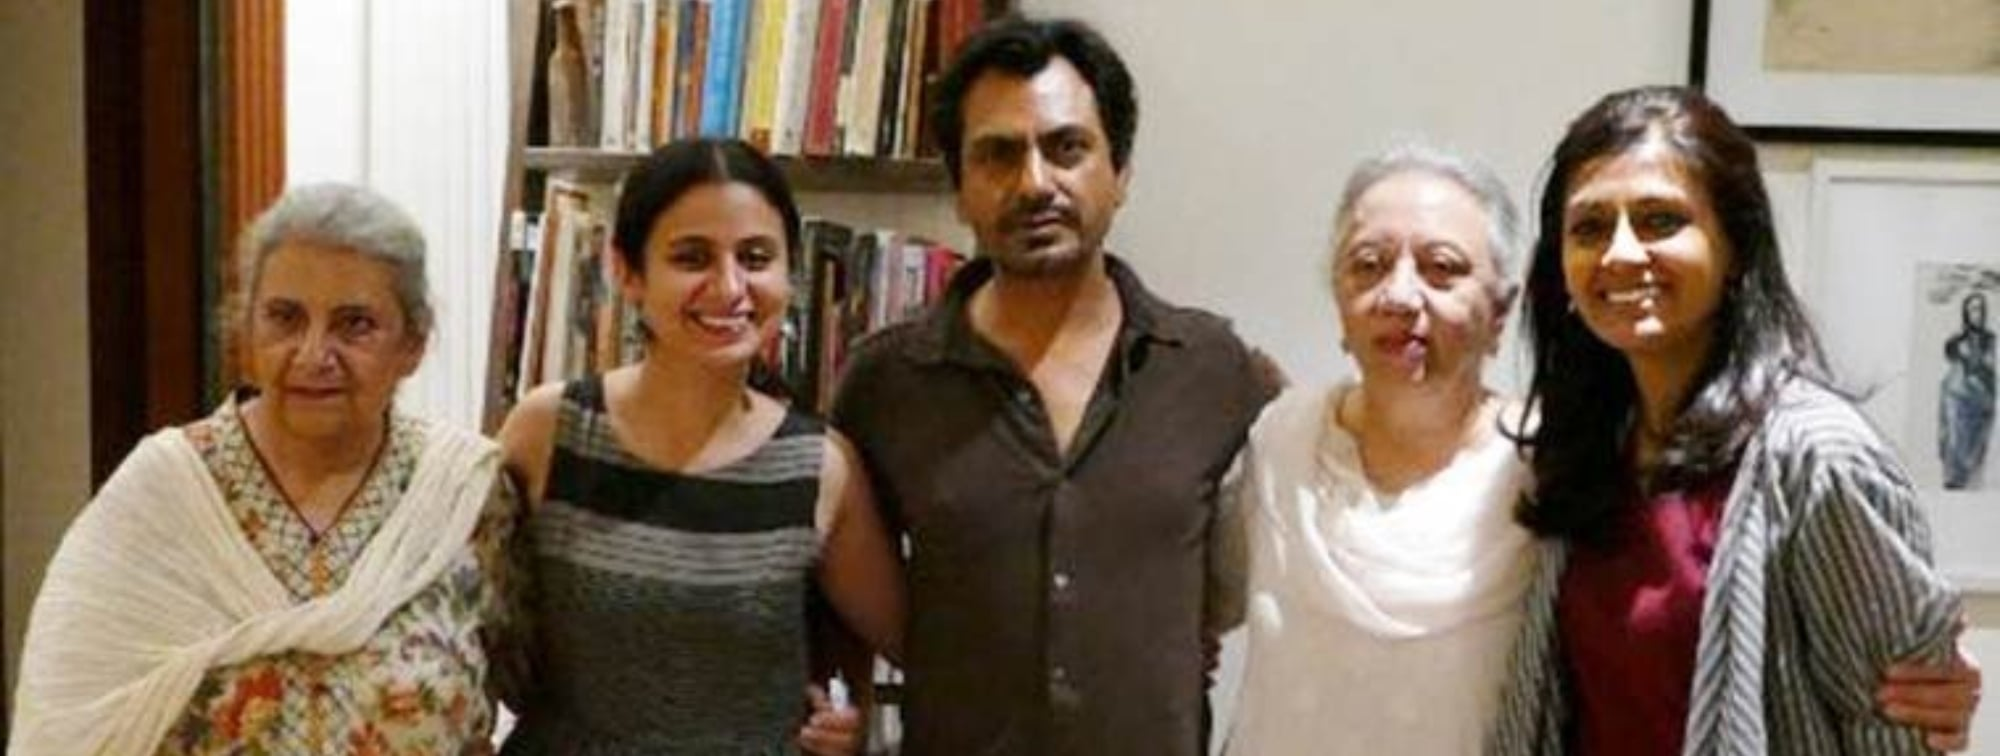 Manto's daughters Nuzhat Arshad and Nusrat Jalal with director Nandita Das and actors Nawazuddin Siddiqui and Rasik Dugal who play their parents